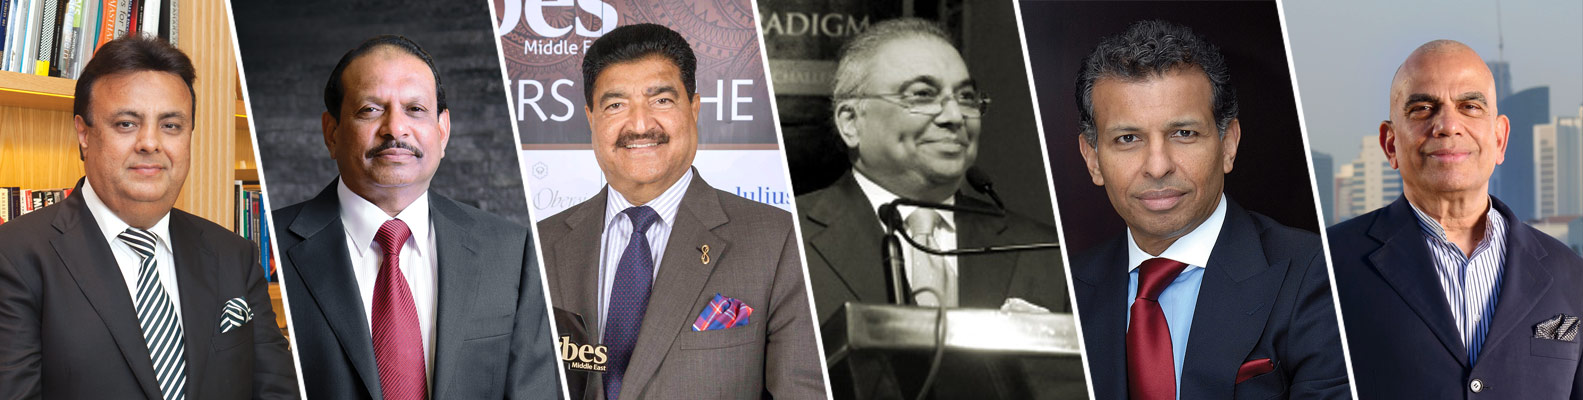 Top Indian Leaders in the Arab World 2015: Owners